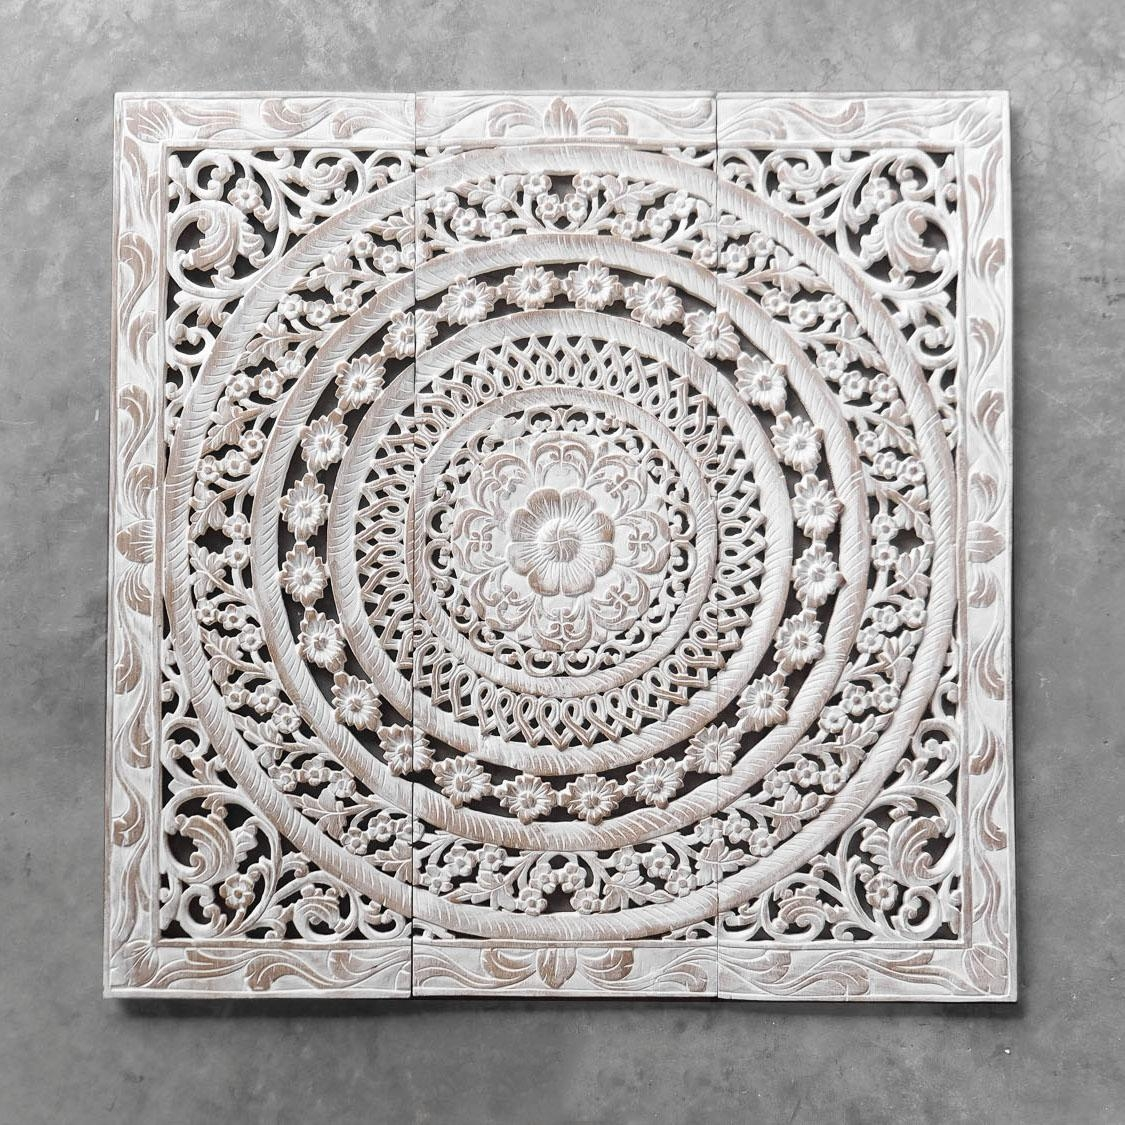 Wood Carved Wall Art | Roselawnlutheran For Wood Carved Wall Art Panels (Image 17 of 20)